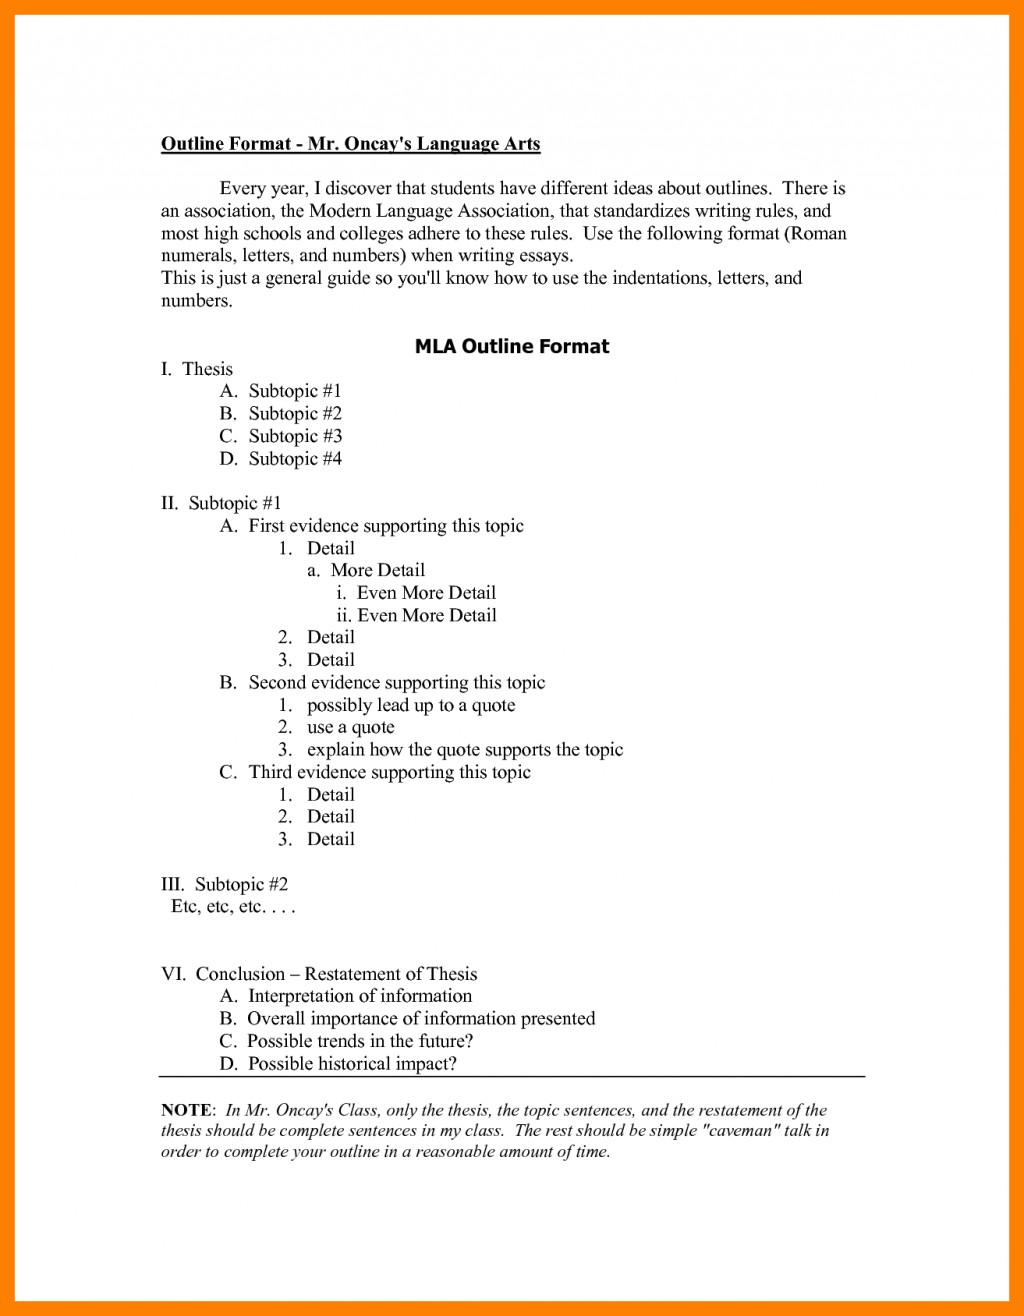 012 High School Outlinemat Mla Research Paper Example Of Examples Incredible Format For Outline Sample Sentence Thesis Statement Large